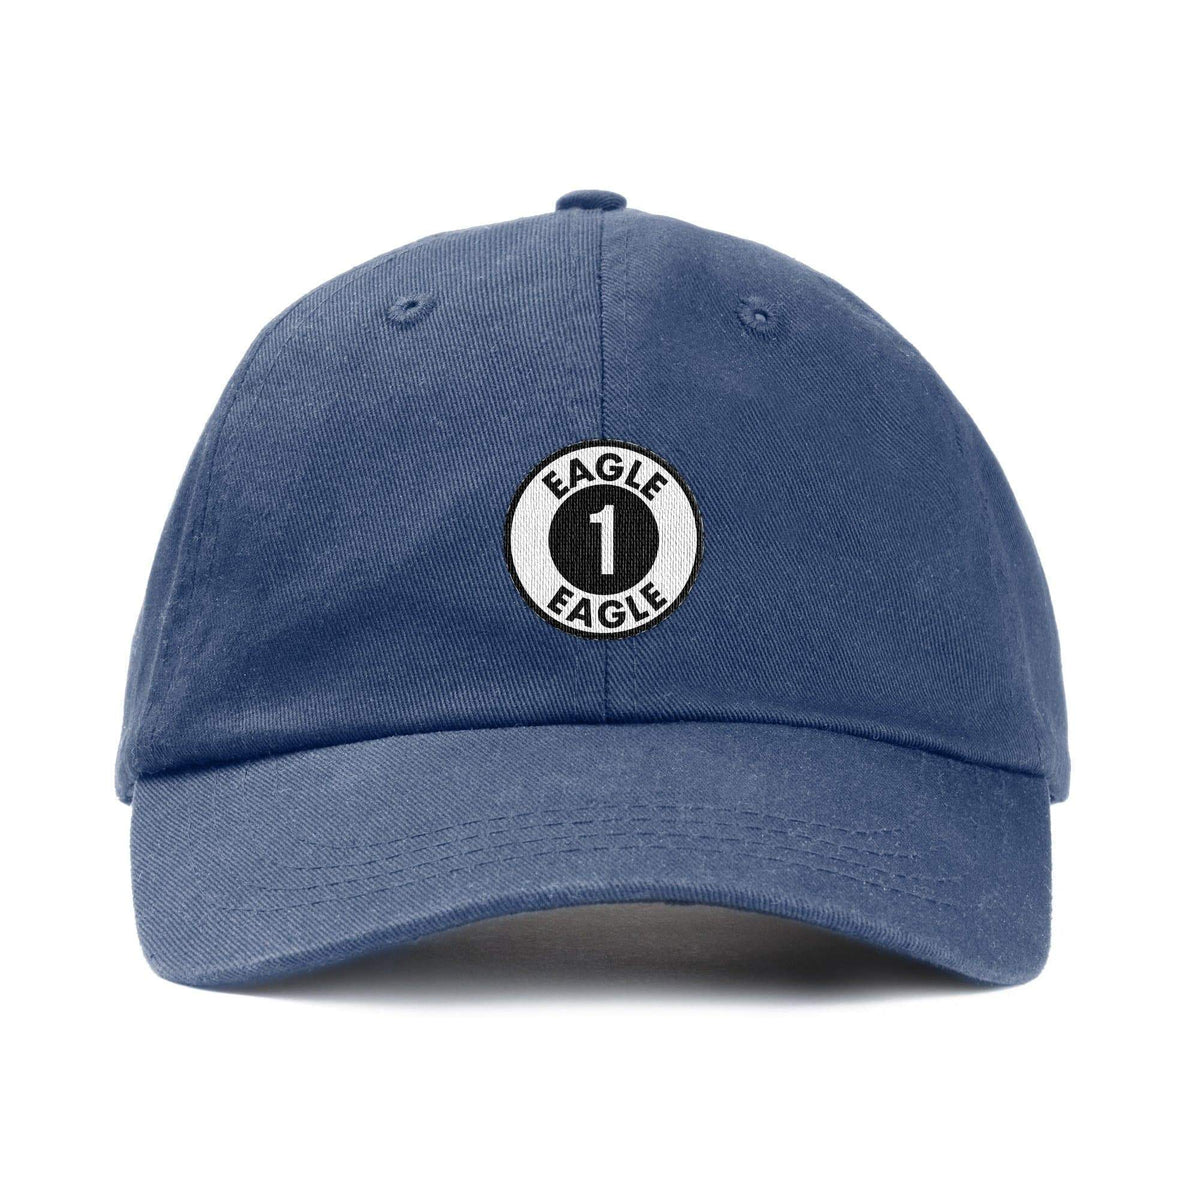 Eagle One Logo Baseball Cap - The Gerry Anderson Store